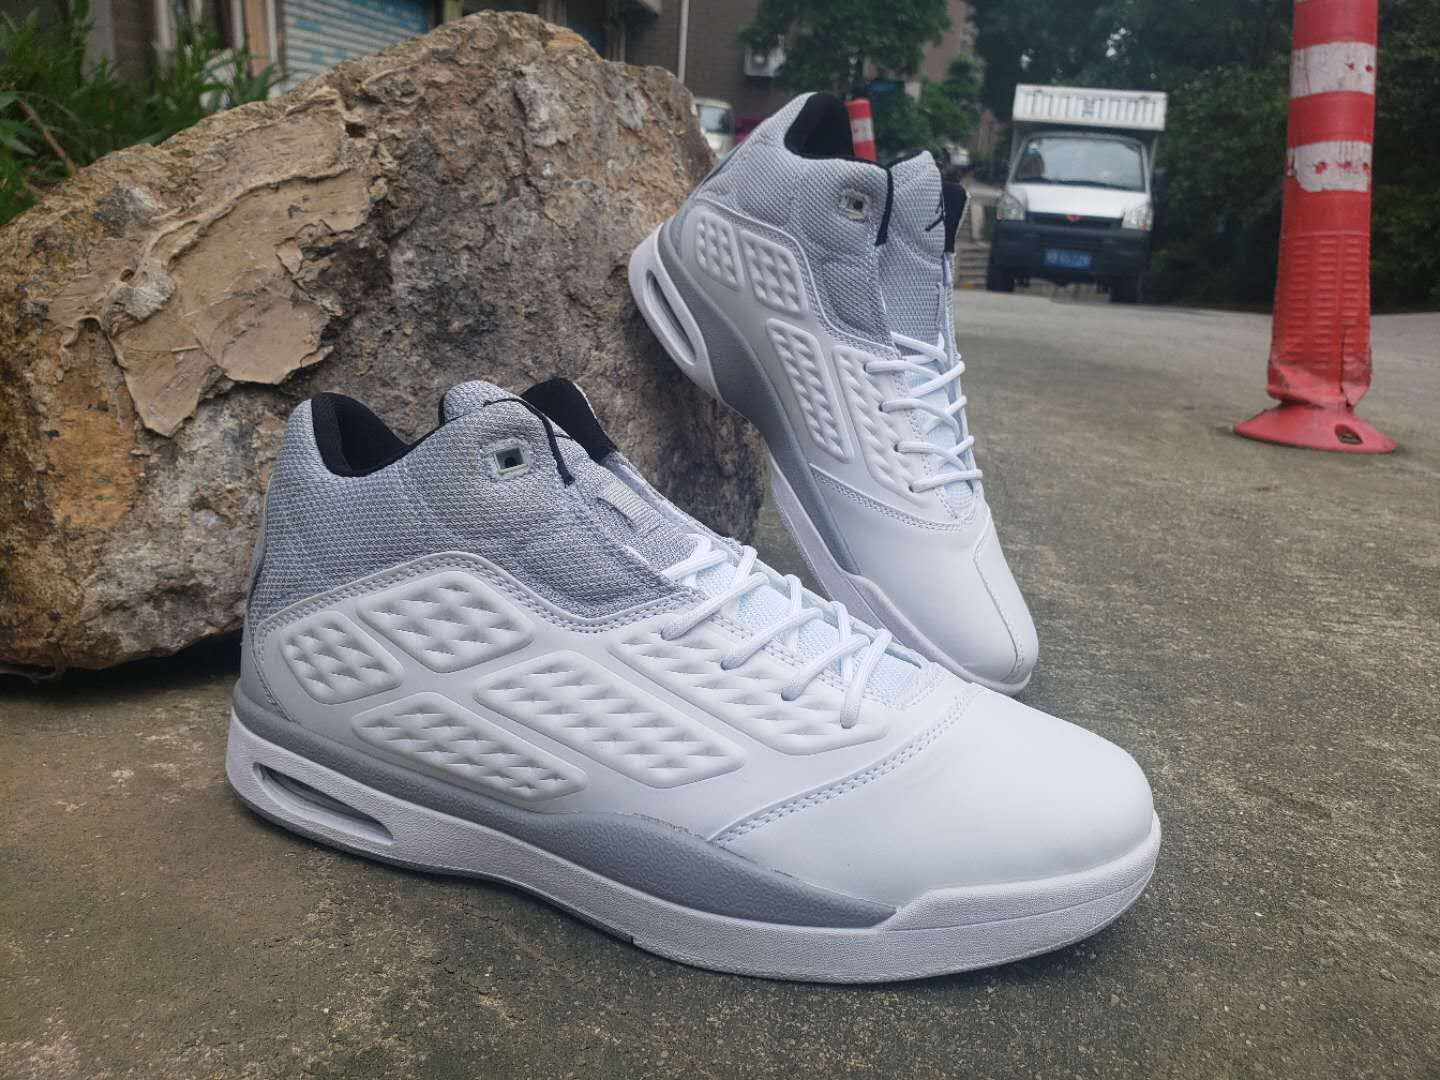 Air Jordan 2019 New School White Grey